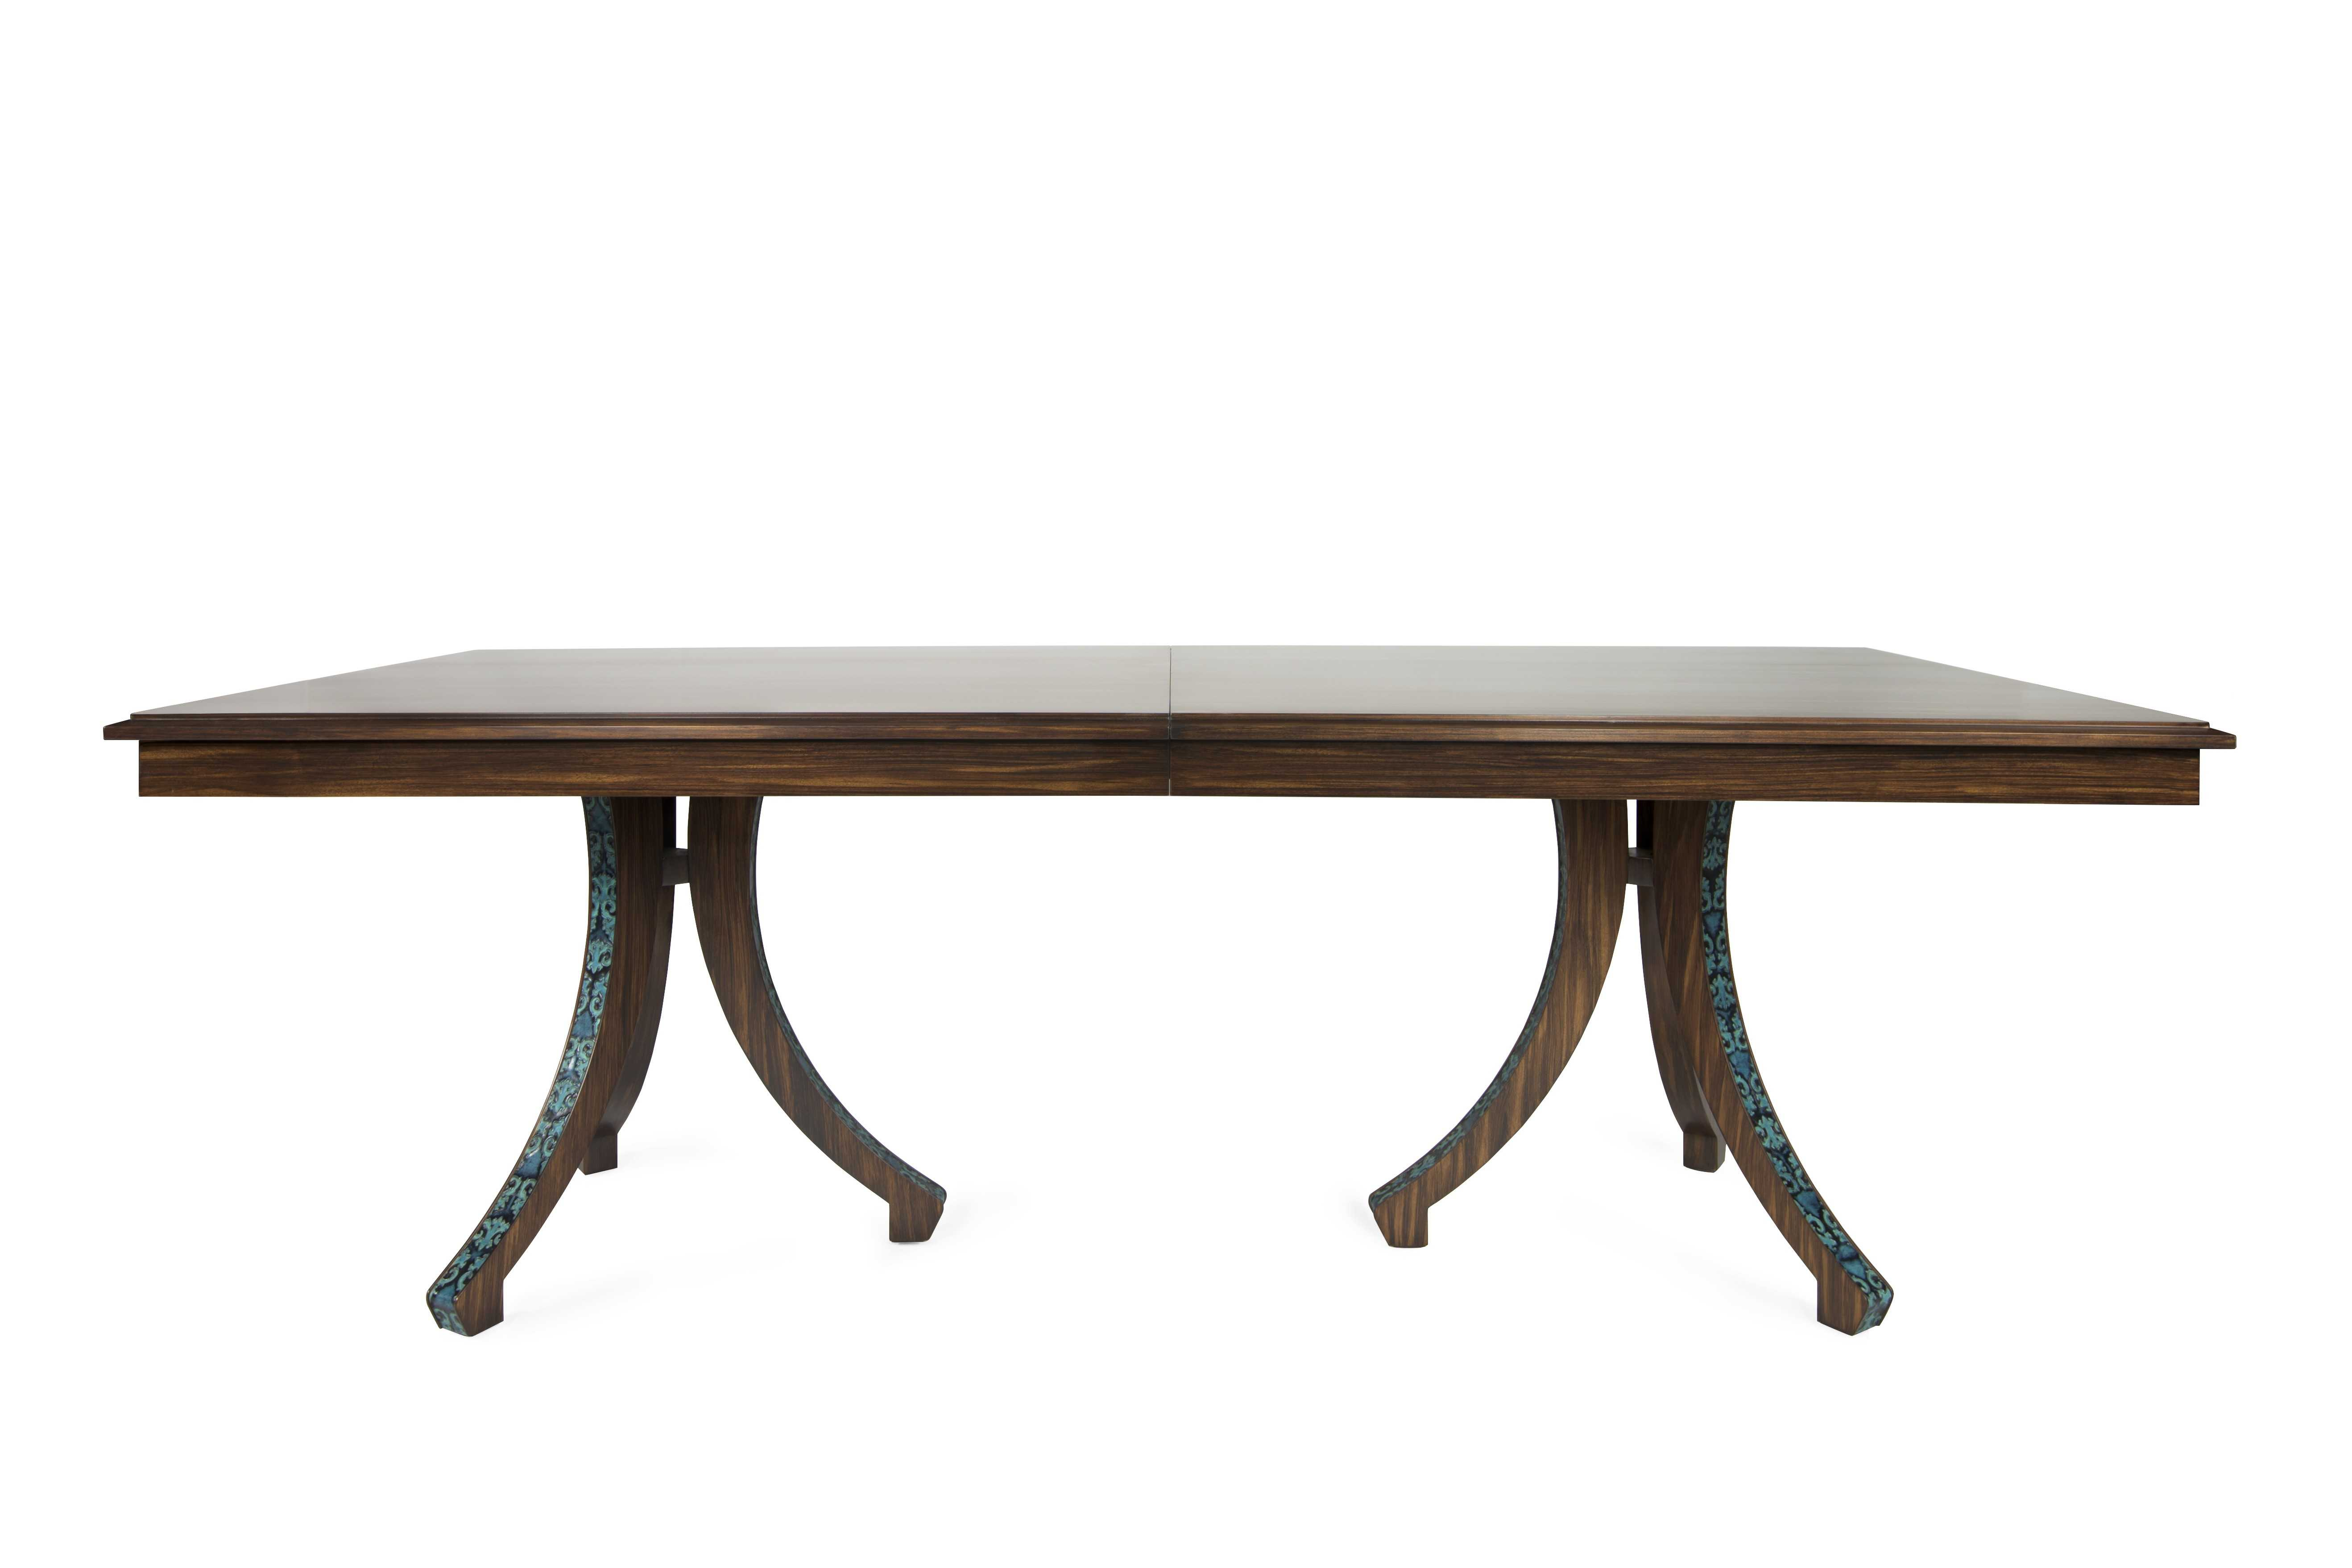 New york interior designer kati curtis releases furniture for Latest dining table designs 2015